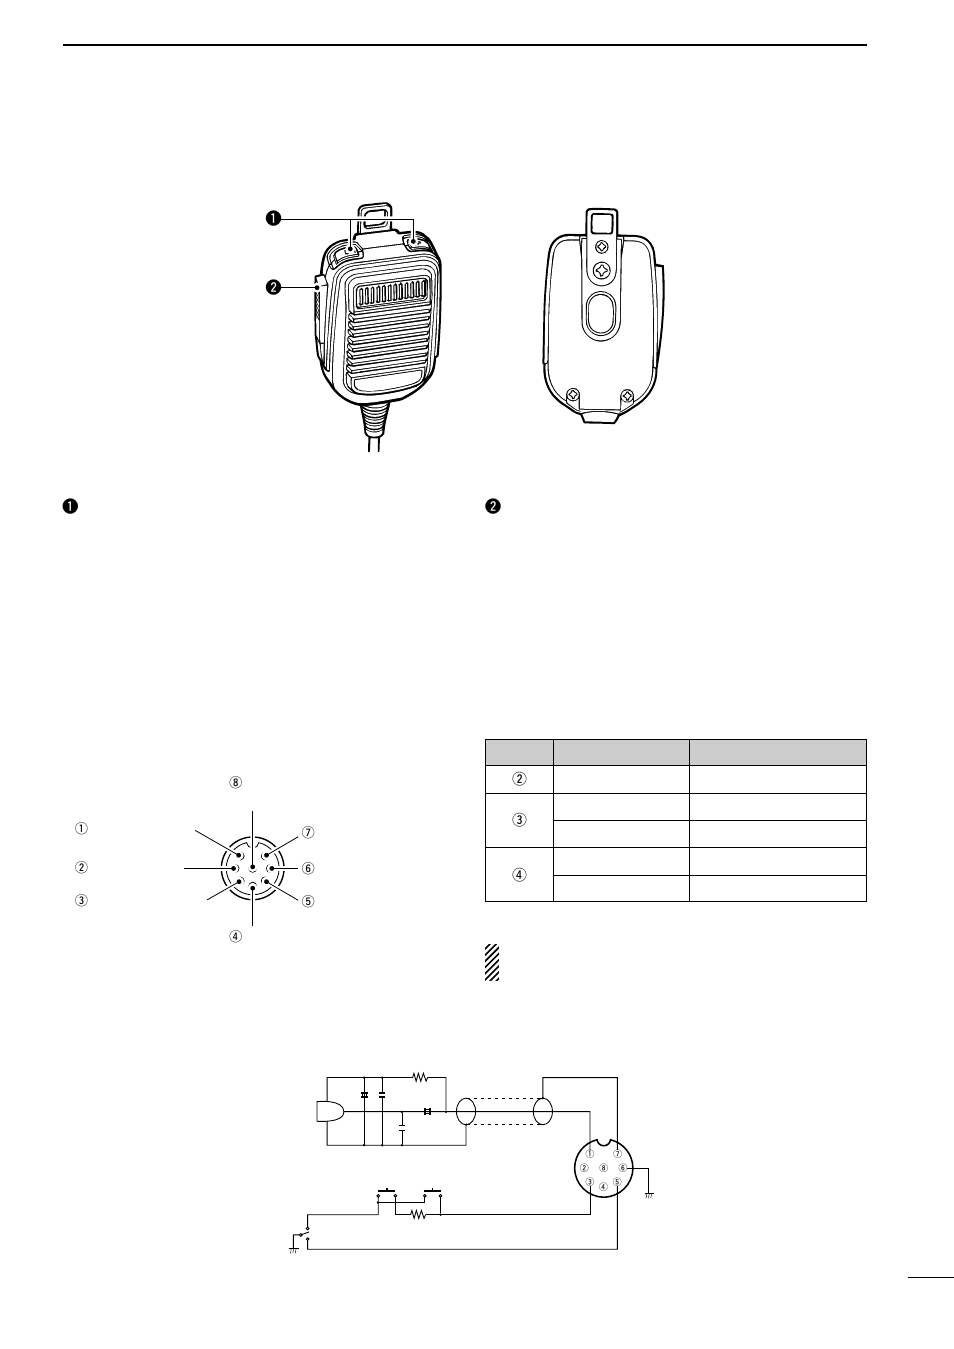 Icom Ic Page on I Hm 36 Microphone Schematic